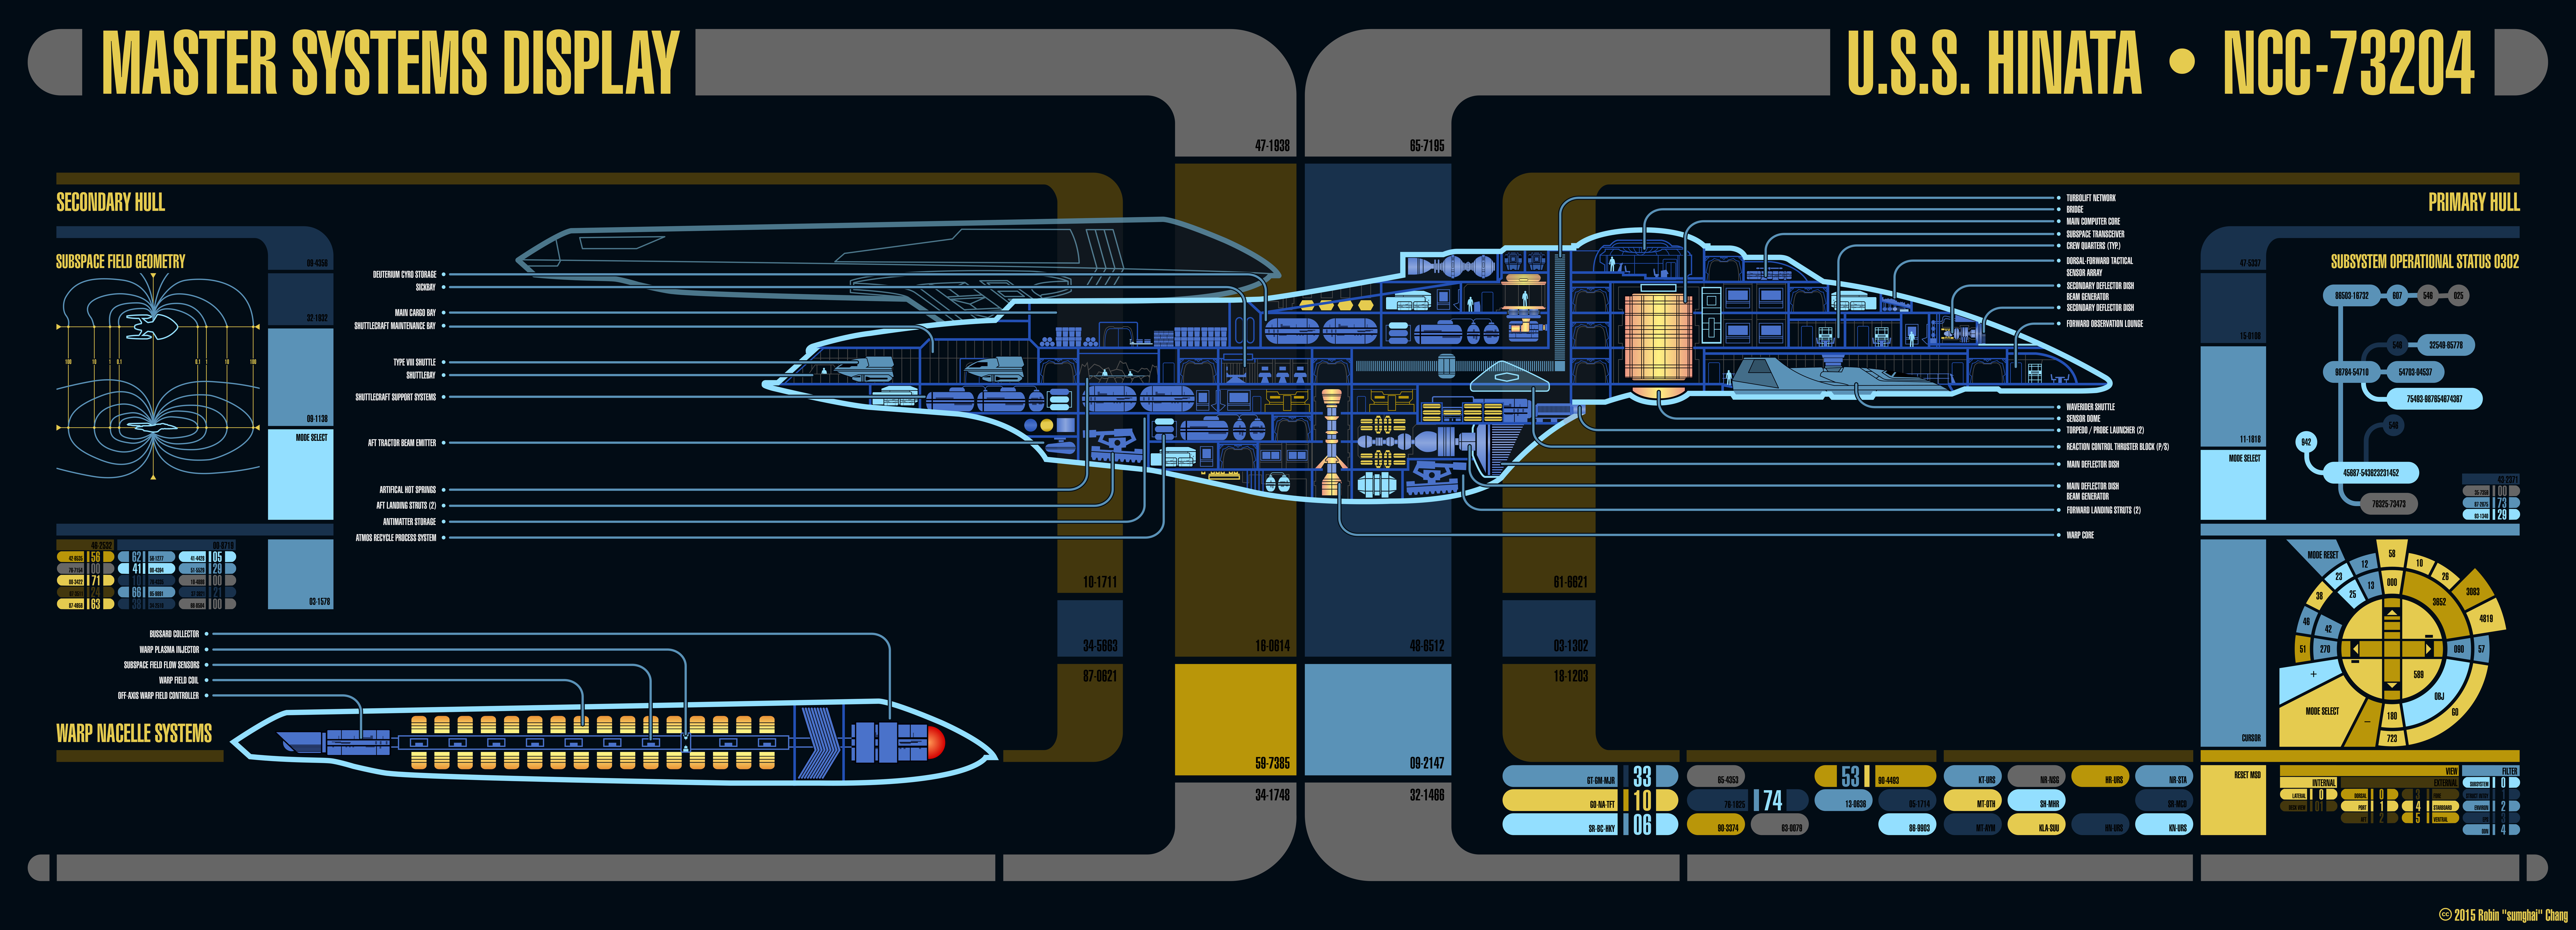 Uss Hinata Ncc 73204 Master Systems Display By Sumghai